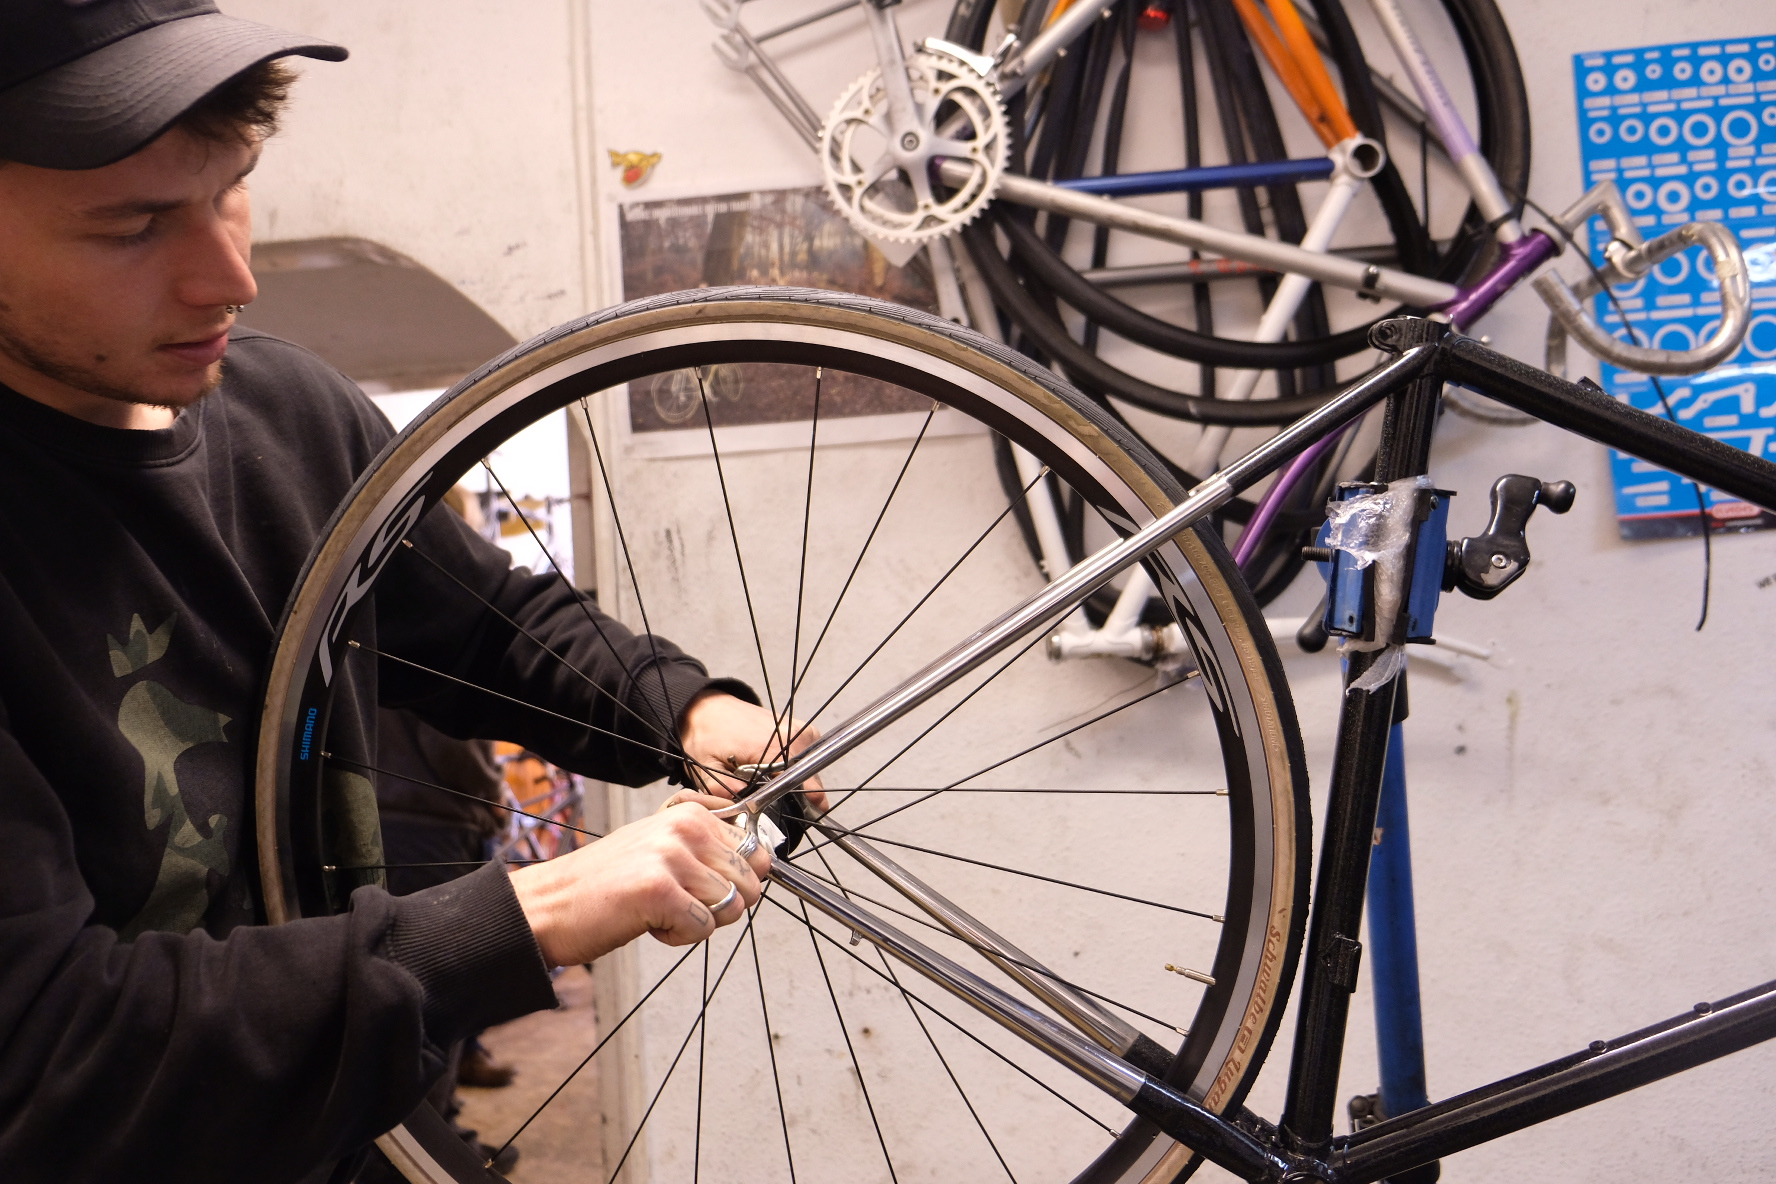 Shop manager Barney works on a classic steel framed bicycle that is being carefully restored.